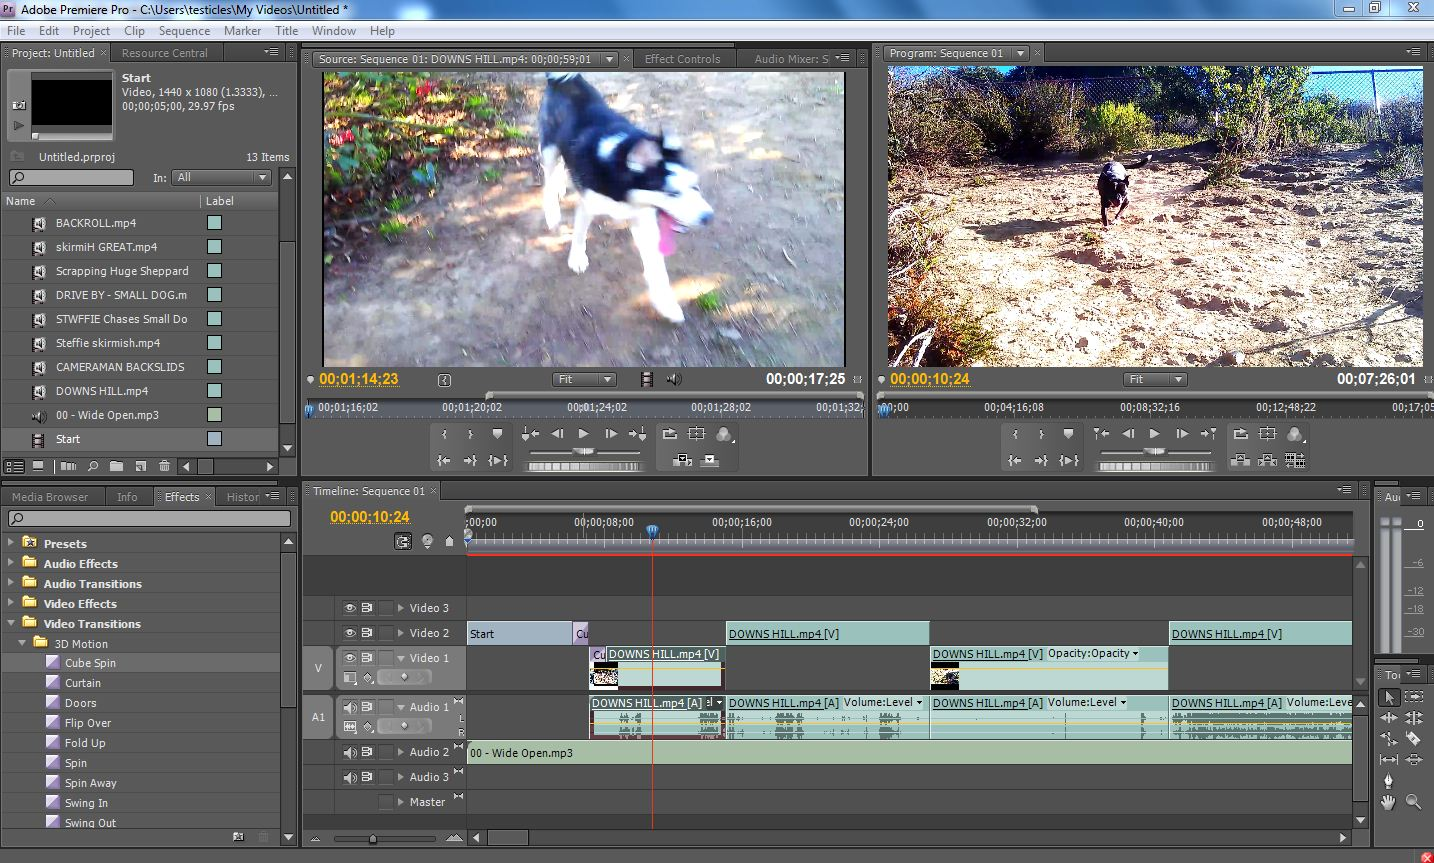 Quantum Support: Adobe Premiere Pro Digital Video Editing Pic: quantumsupport.blogspot.com/2011/12/adobe-premiere-pro-digital...